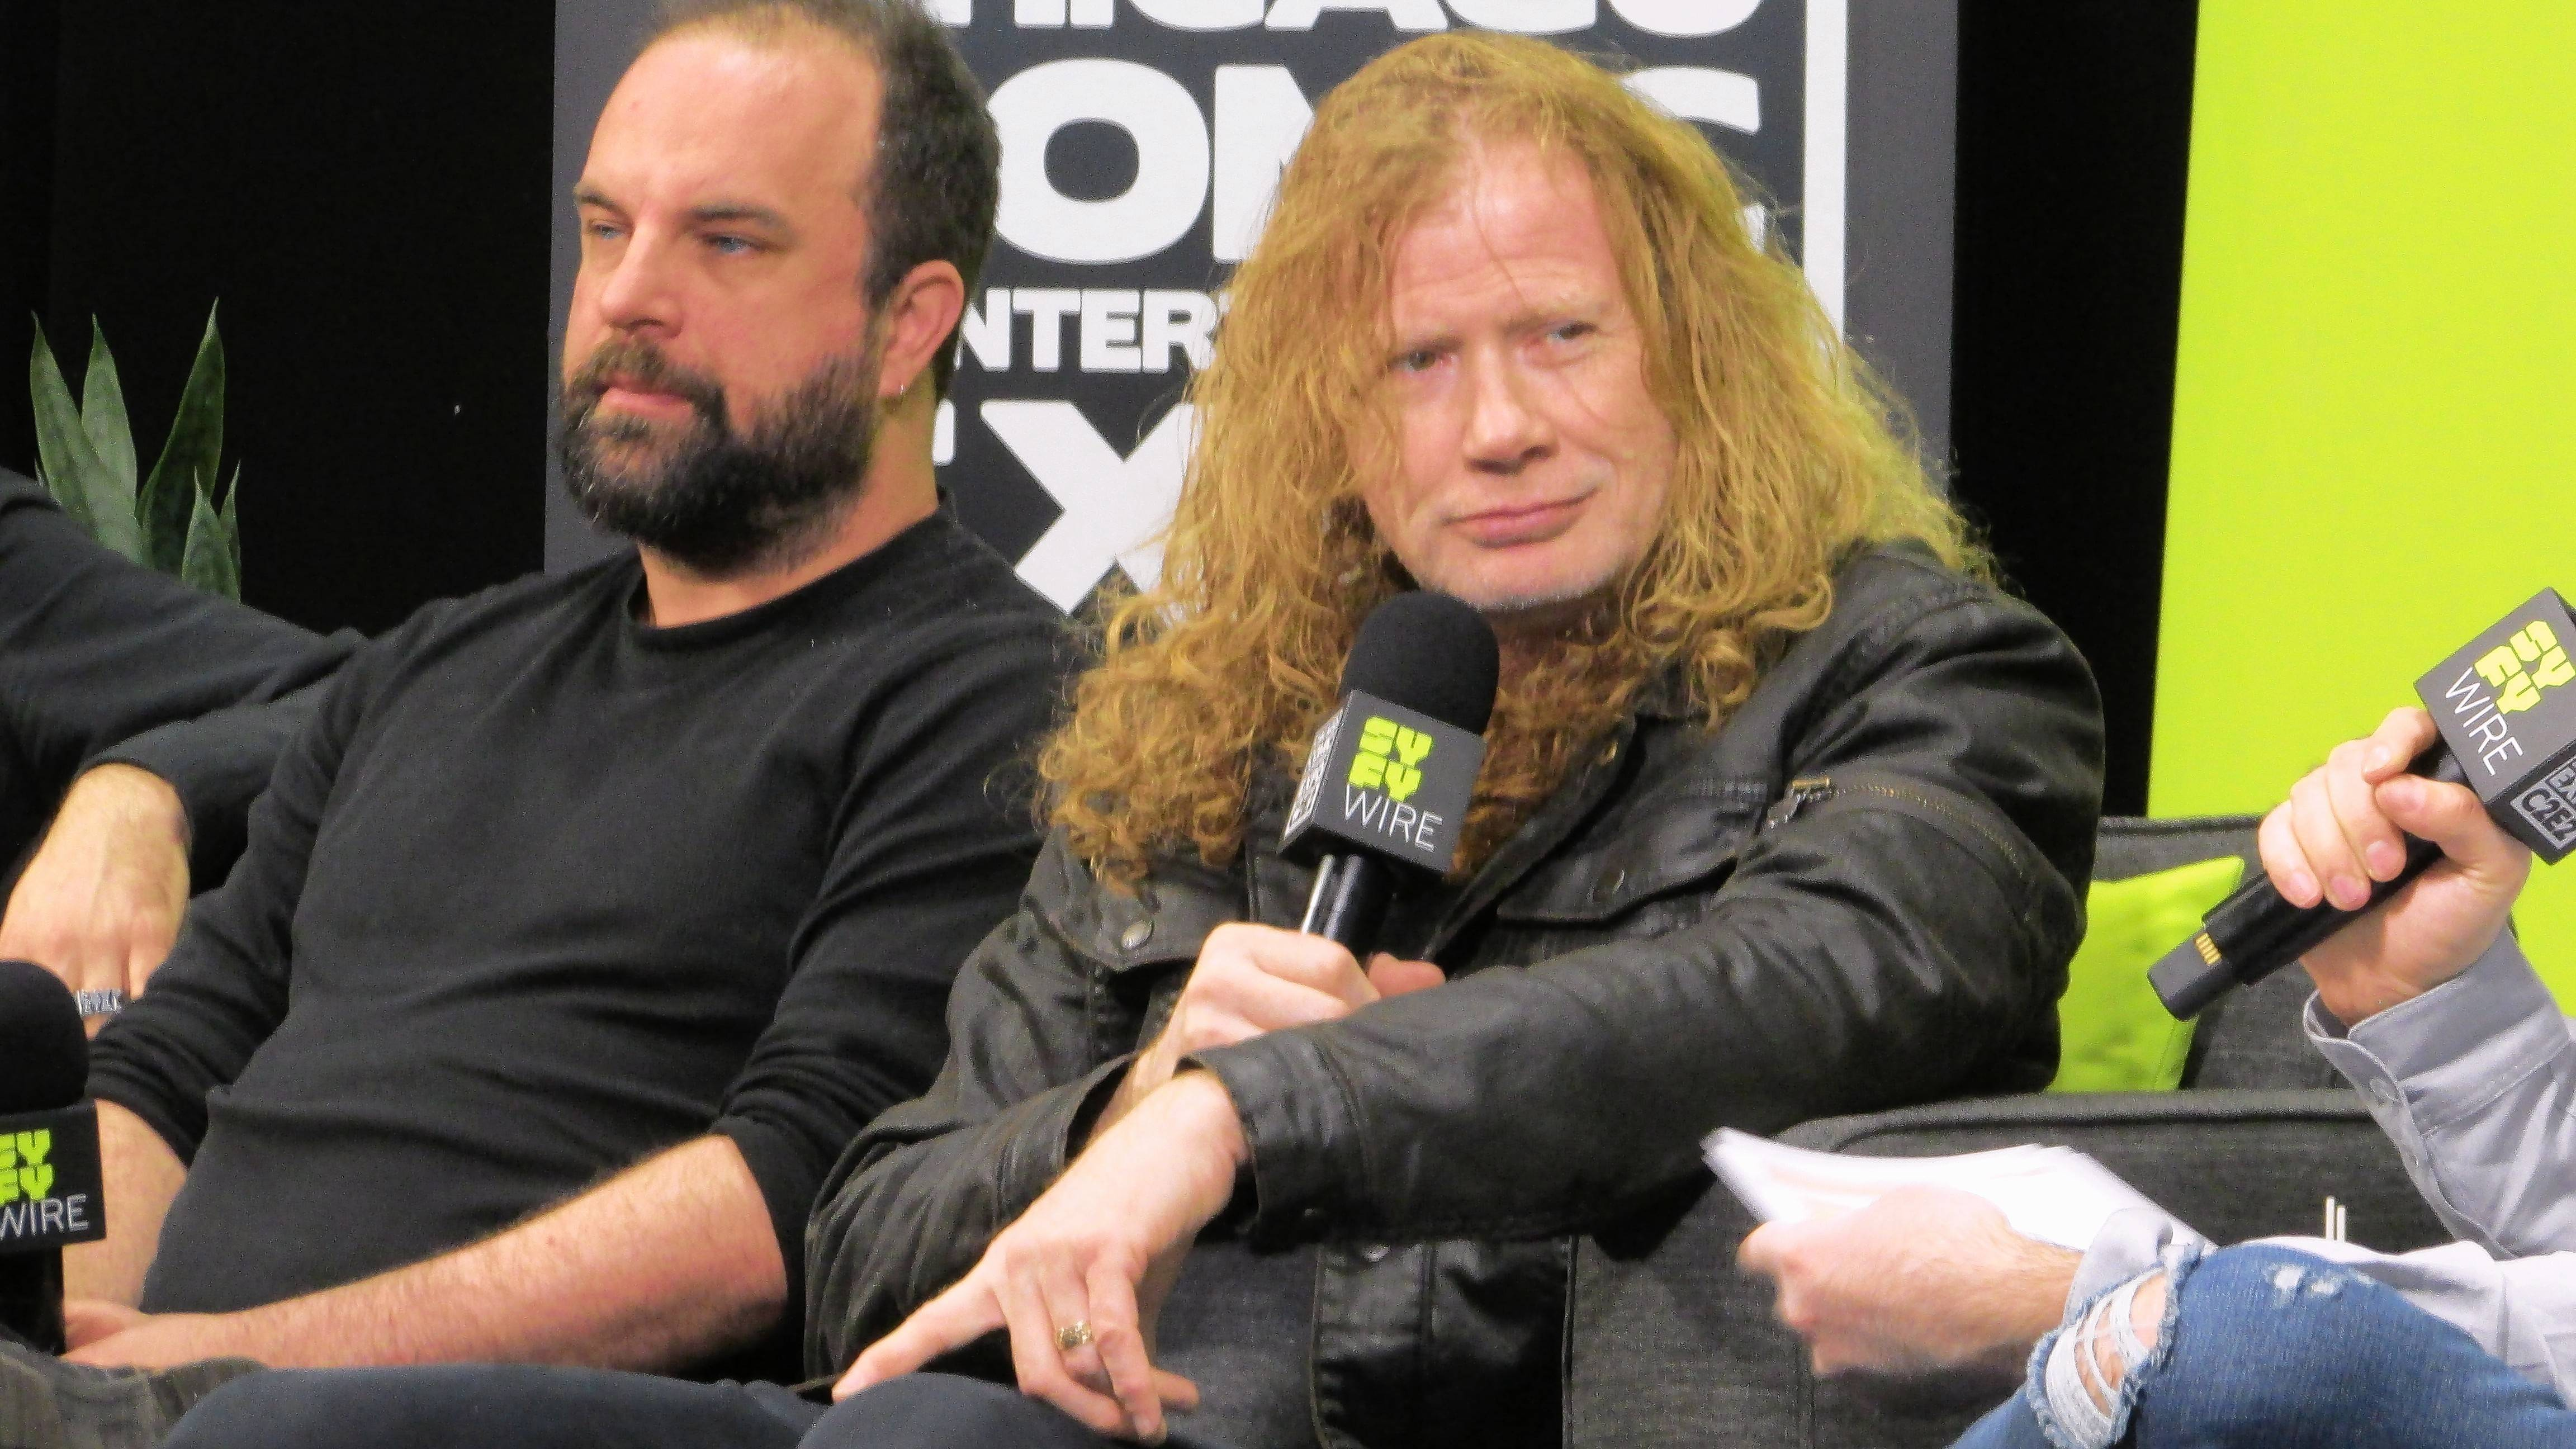 Megadeth frontman Dave Mustaine, right, and Heavy Metal Comics managing editor Tim Seeley talk about their comic-book collaboration Friday at the SyFy Wire stage at C2E2 in Chicago.